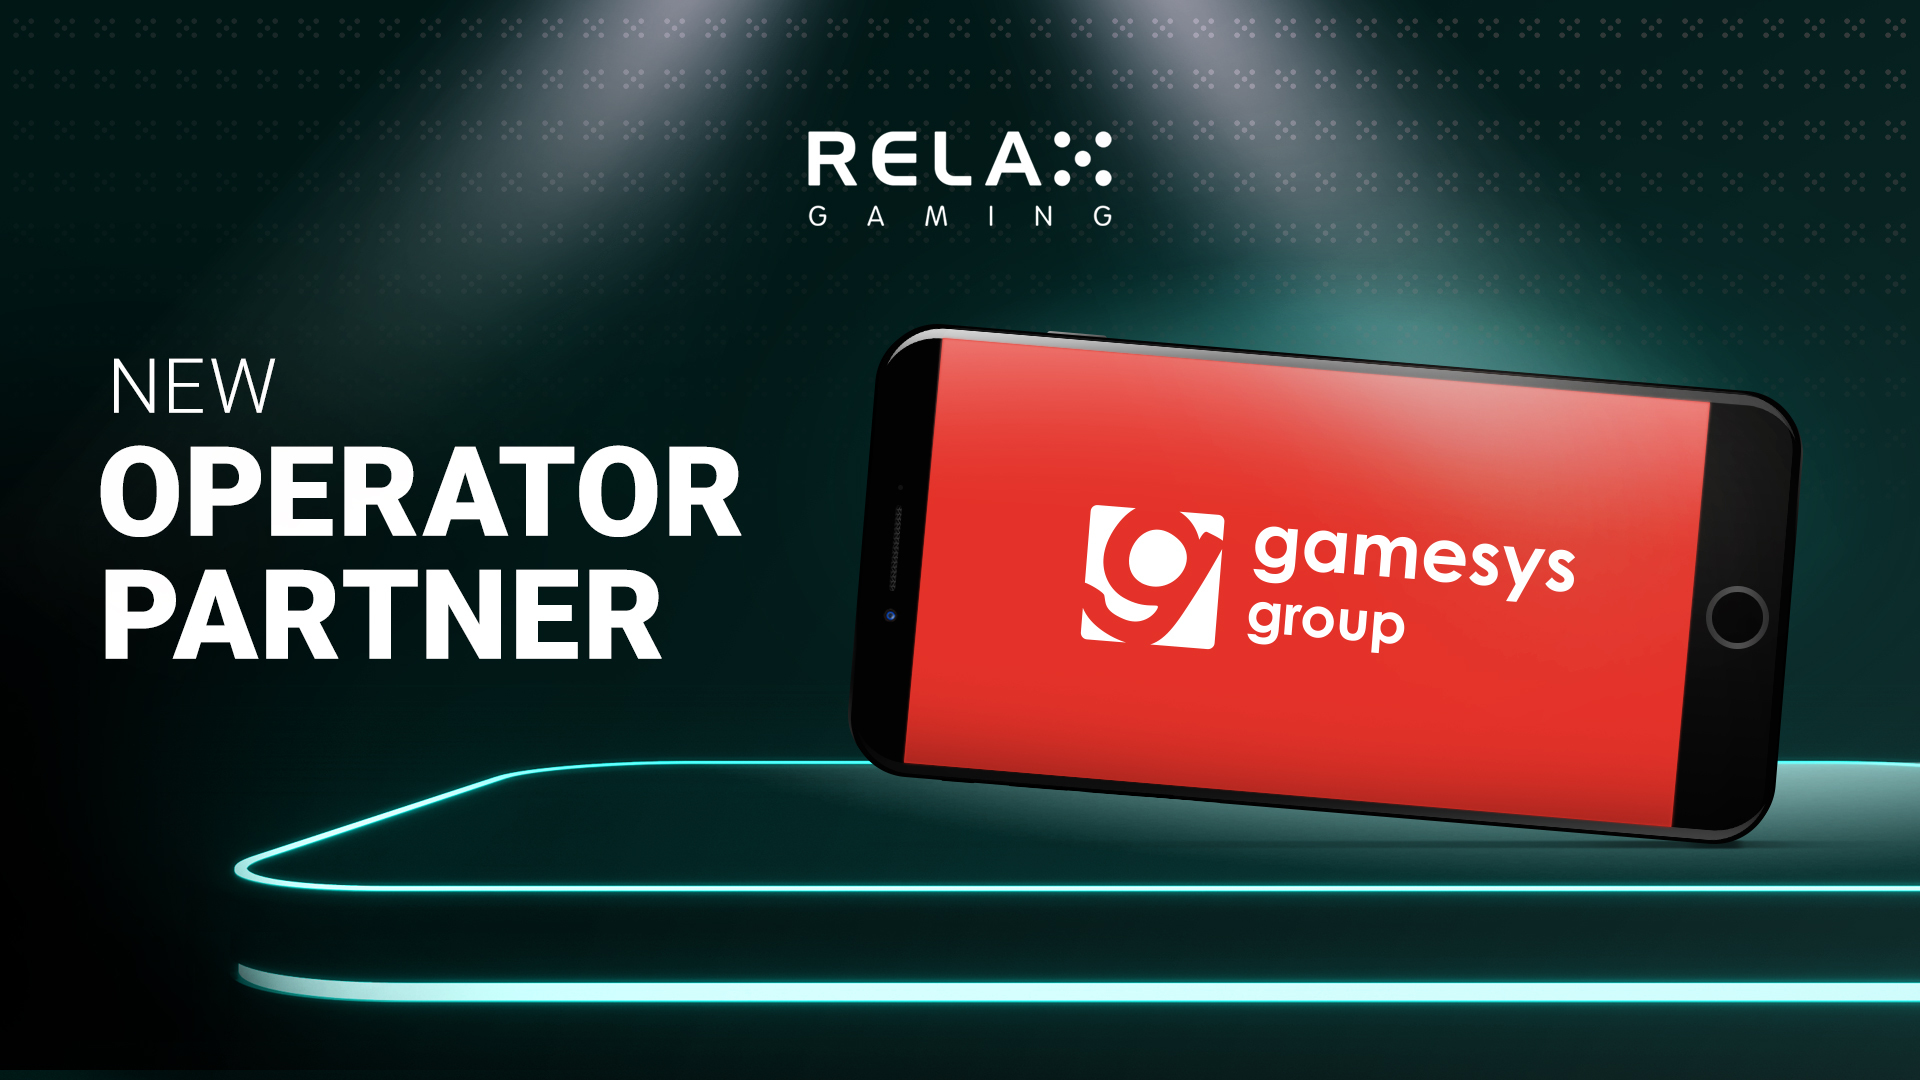 Relax launches with Gamesys Group plc in major UK deal